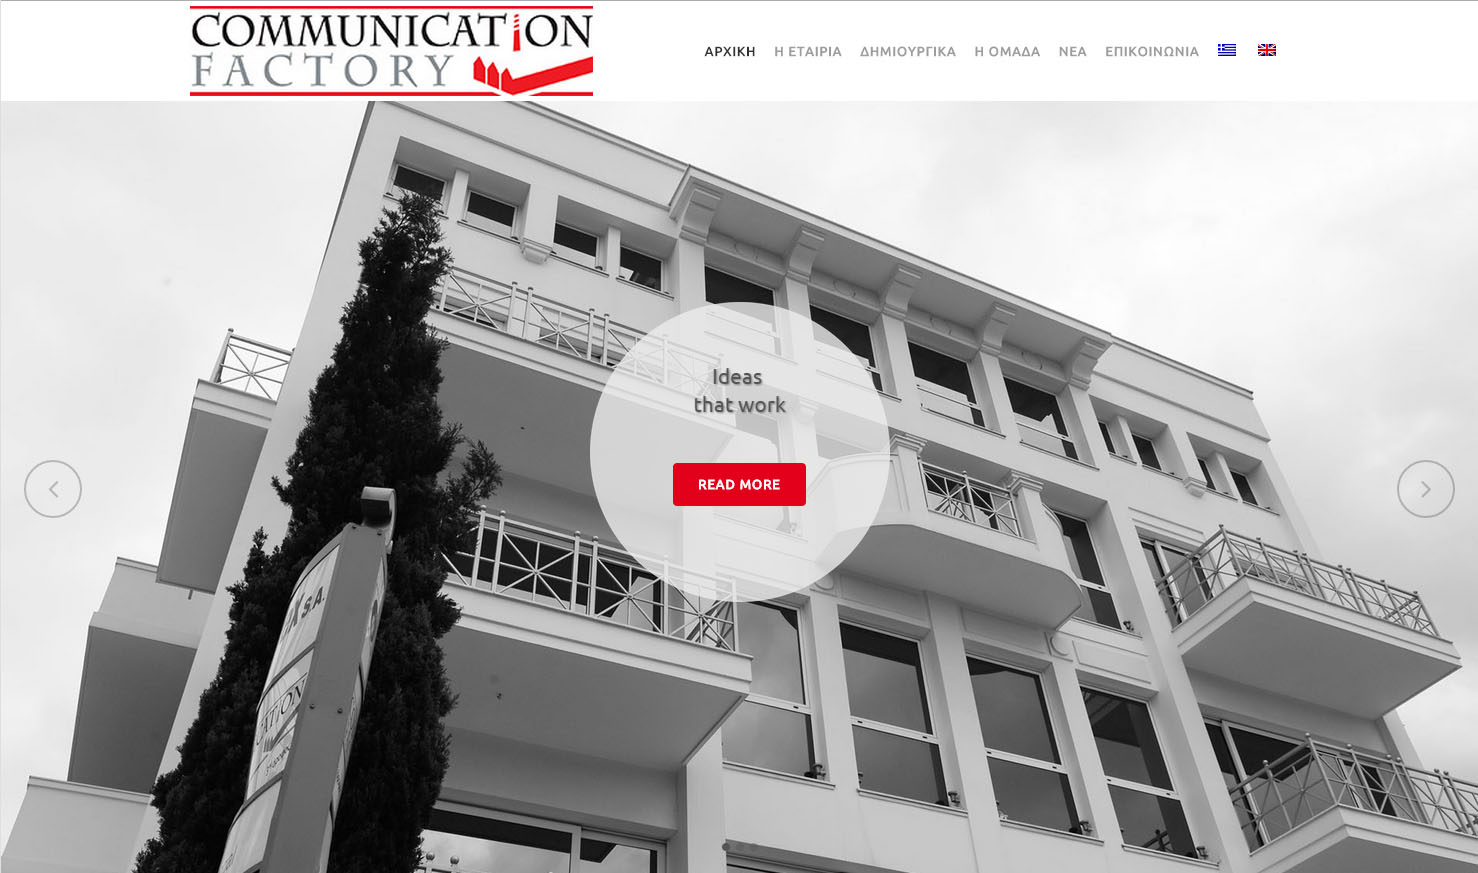 Communication Factory website